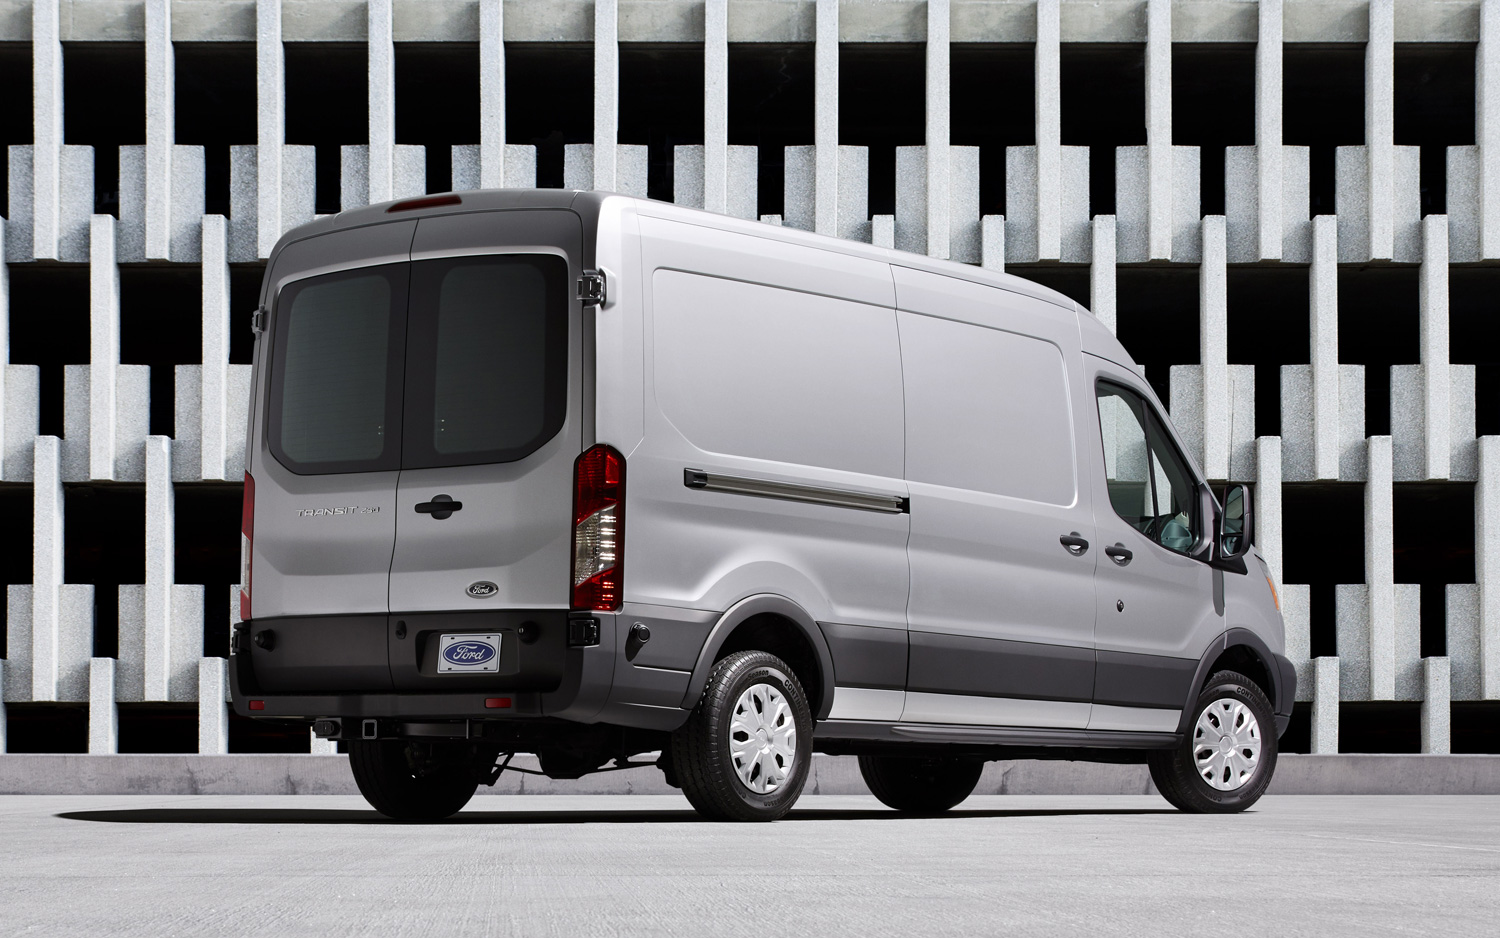 2015 Ford Transit 150 Wagon White Rear Side Design (View 7 of 13)